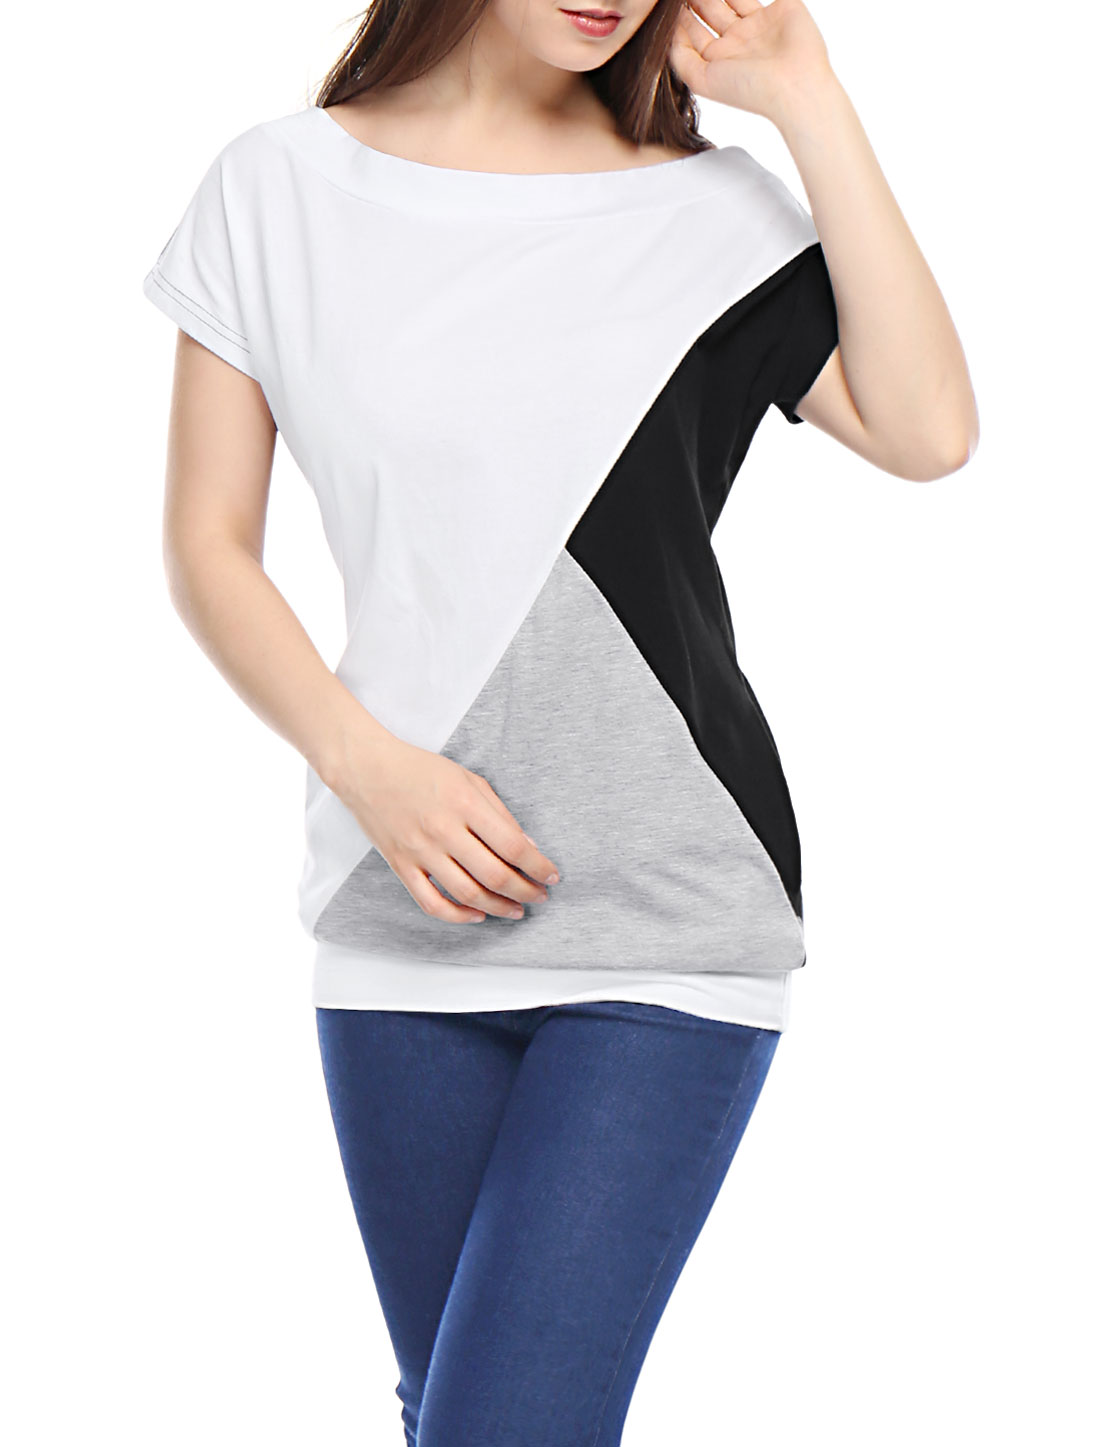 Boat Neck Off Shoulder Black White Gray Tunic Shirt XS for Women